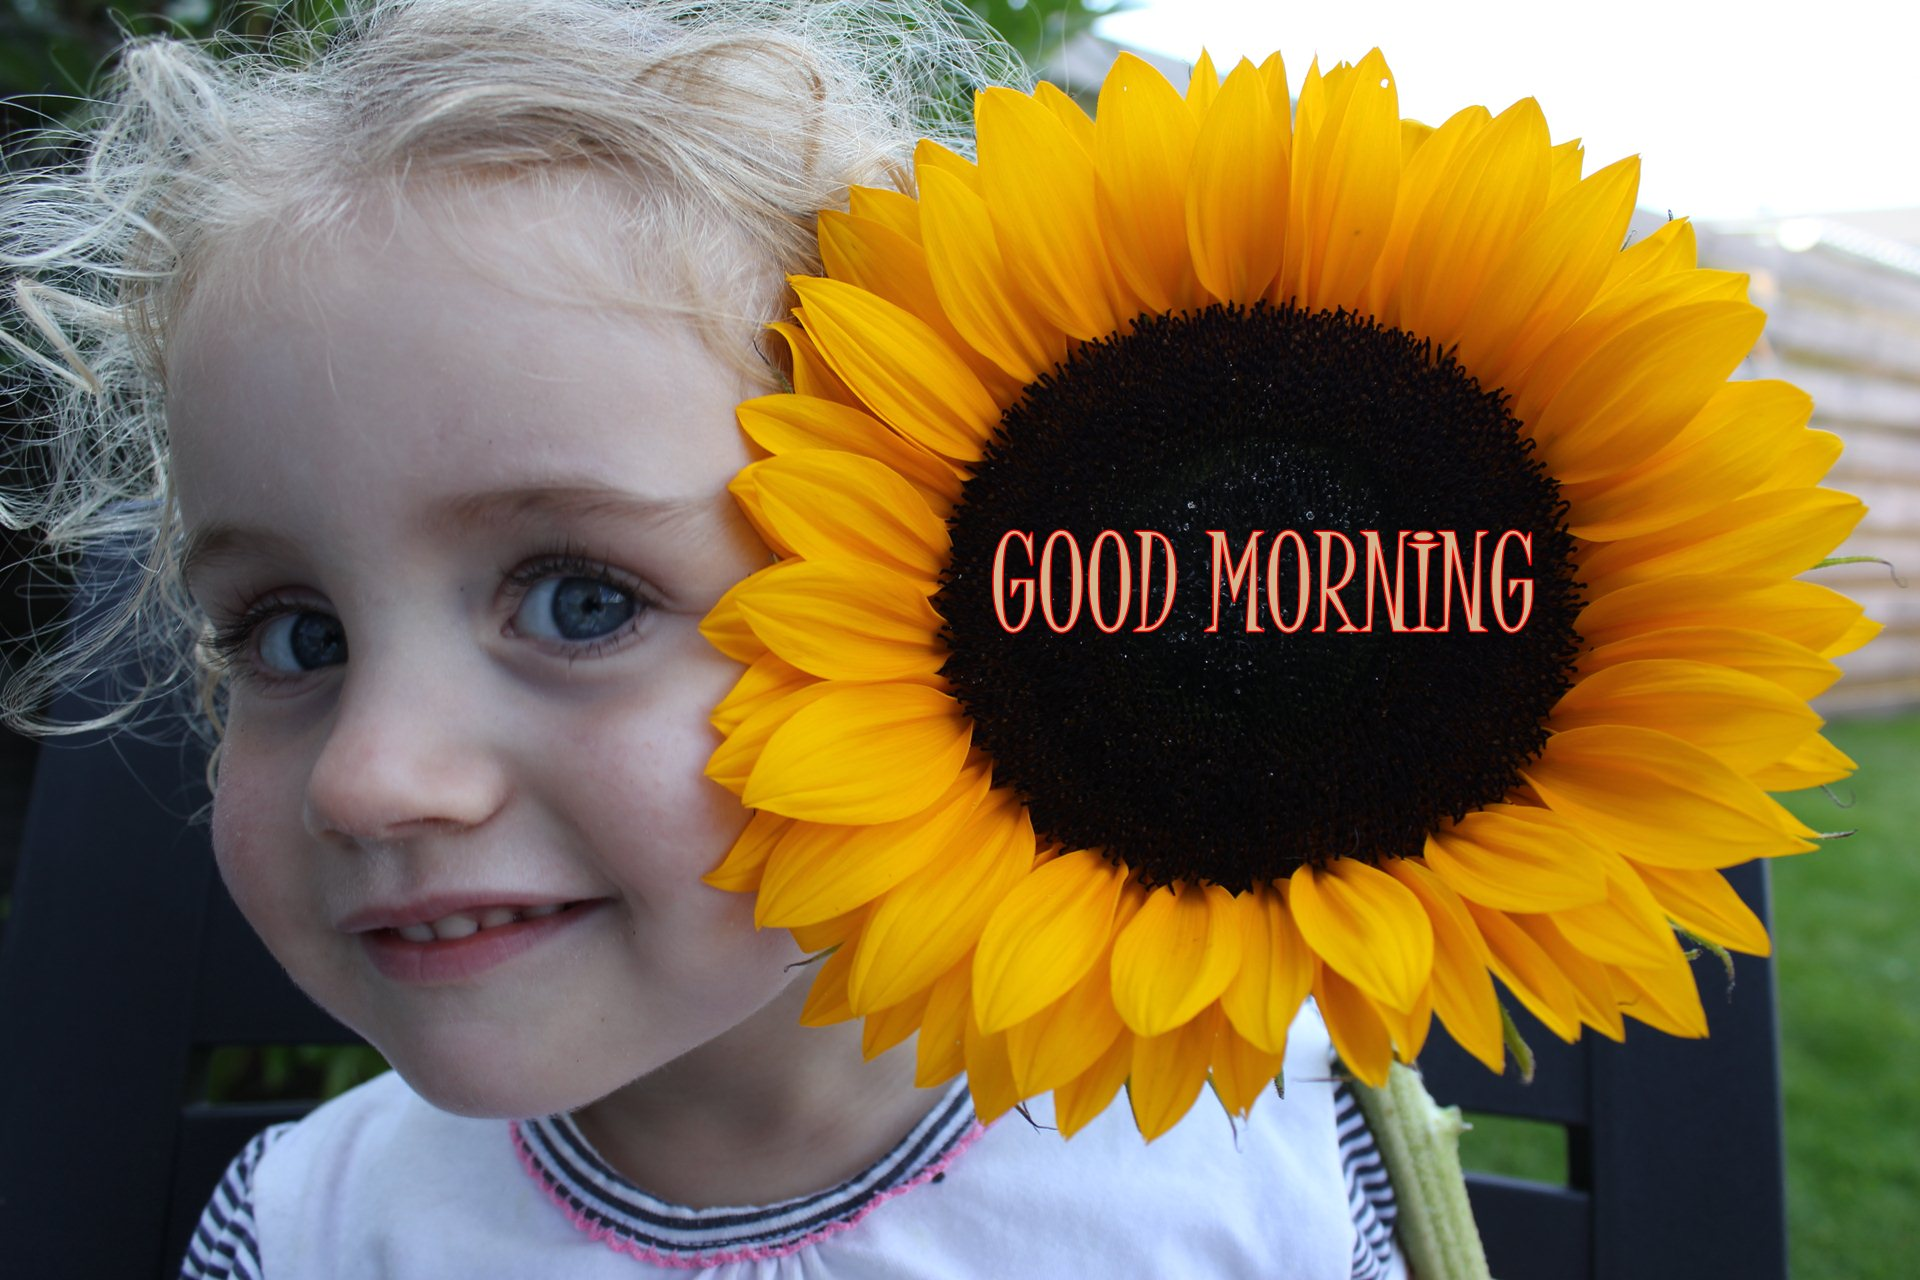 Good Morning Wishes With Baby Pictures Images Page 19